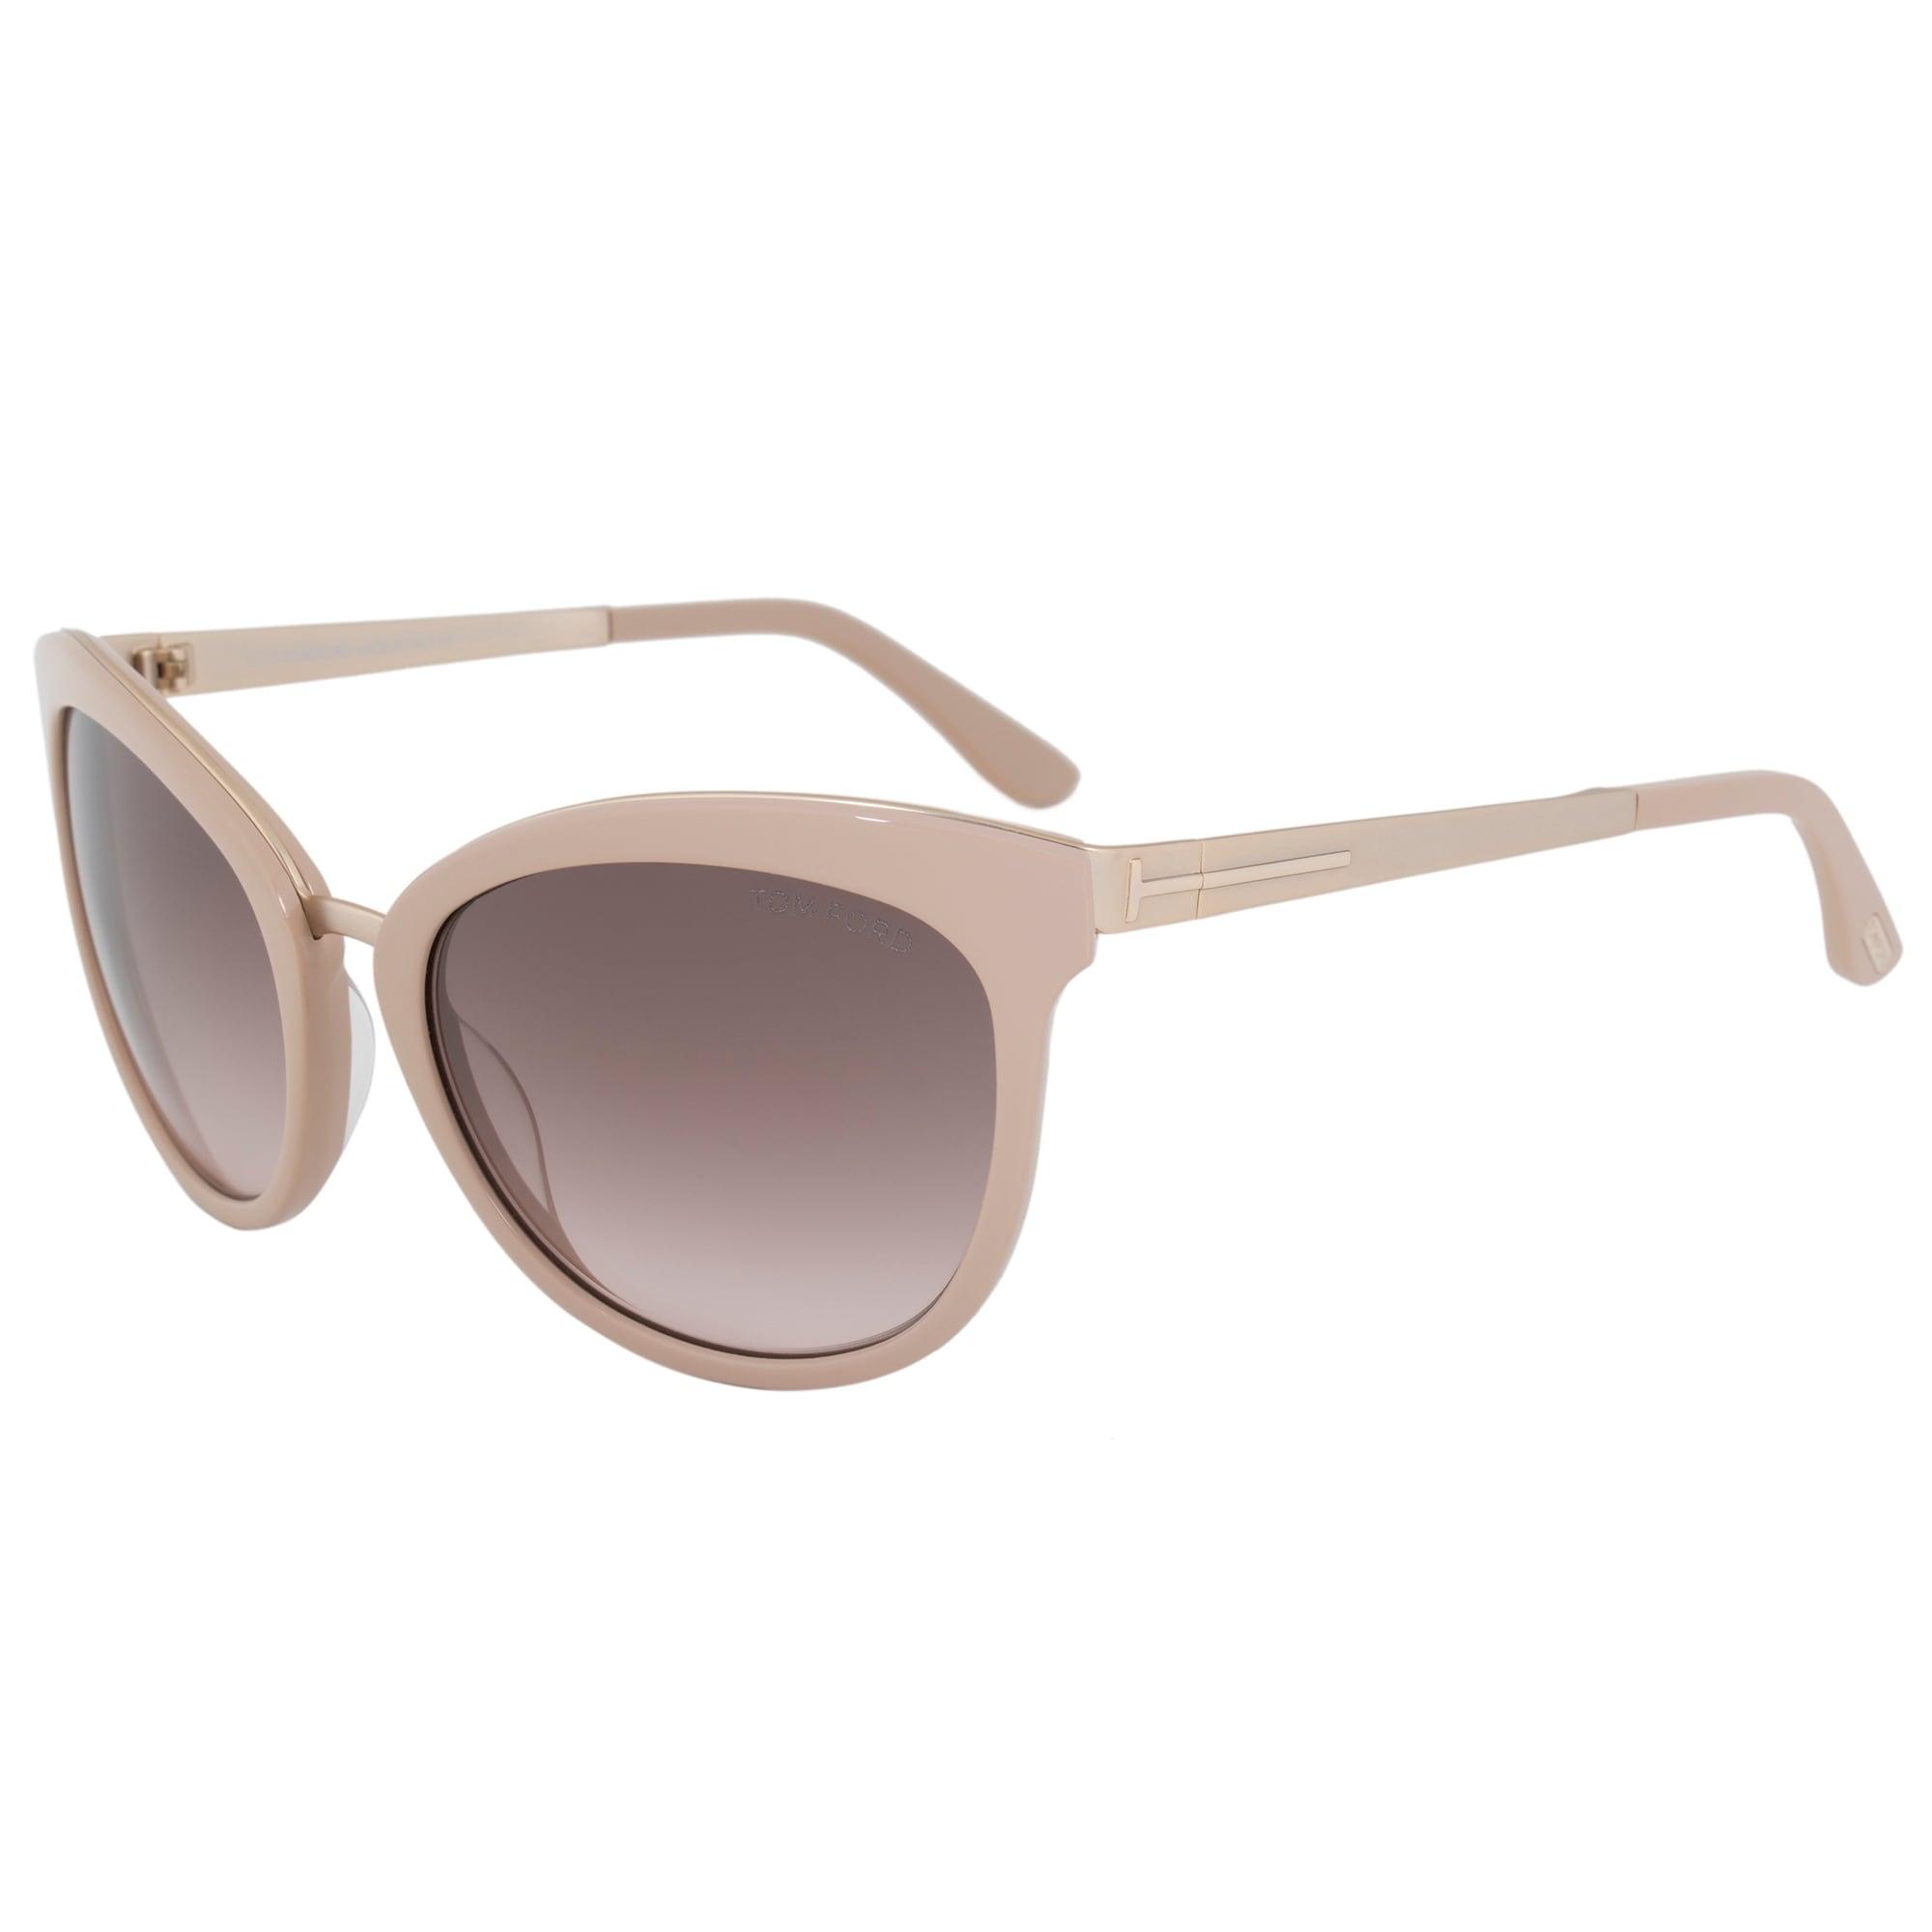 cd0757c07f Shop Tom Ford Emma Women s Cat Eye Sunglasses FT0461 74F 56 - Free Shipping  Today - Overstock - 19622442